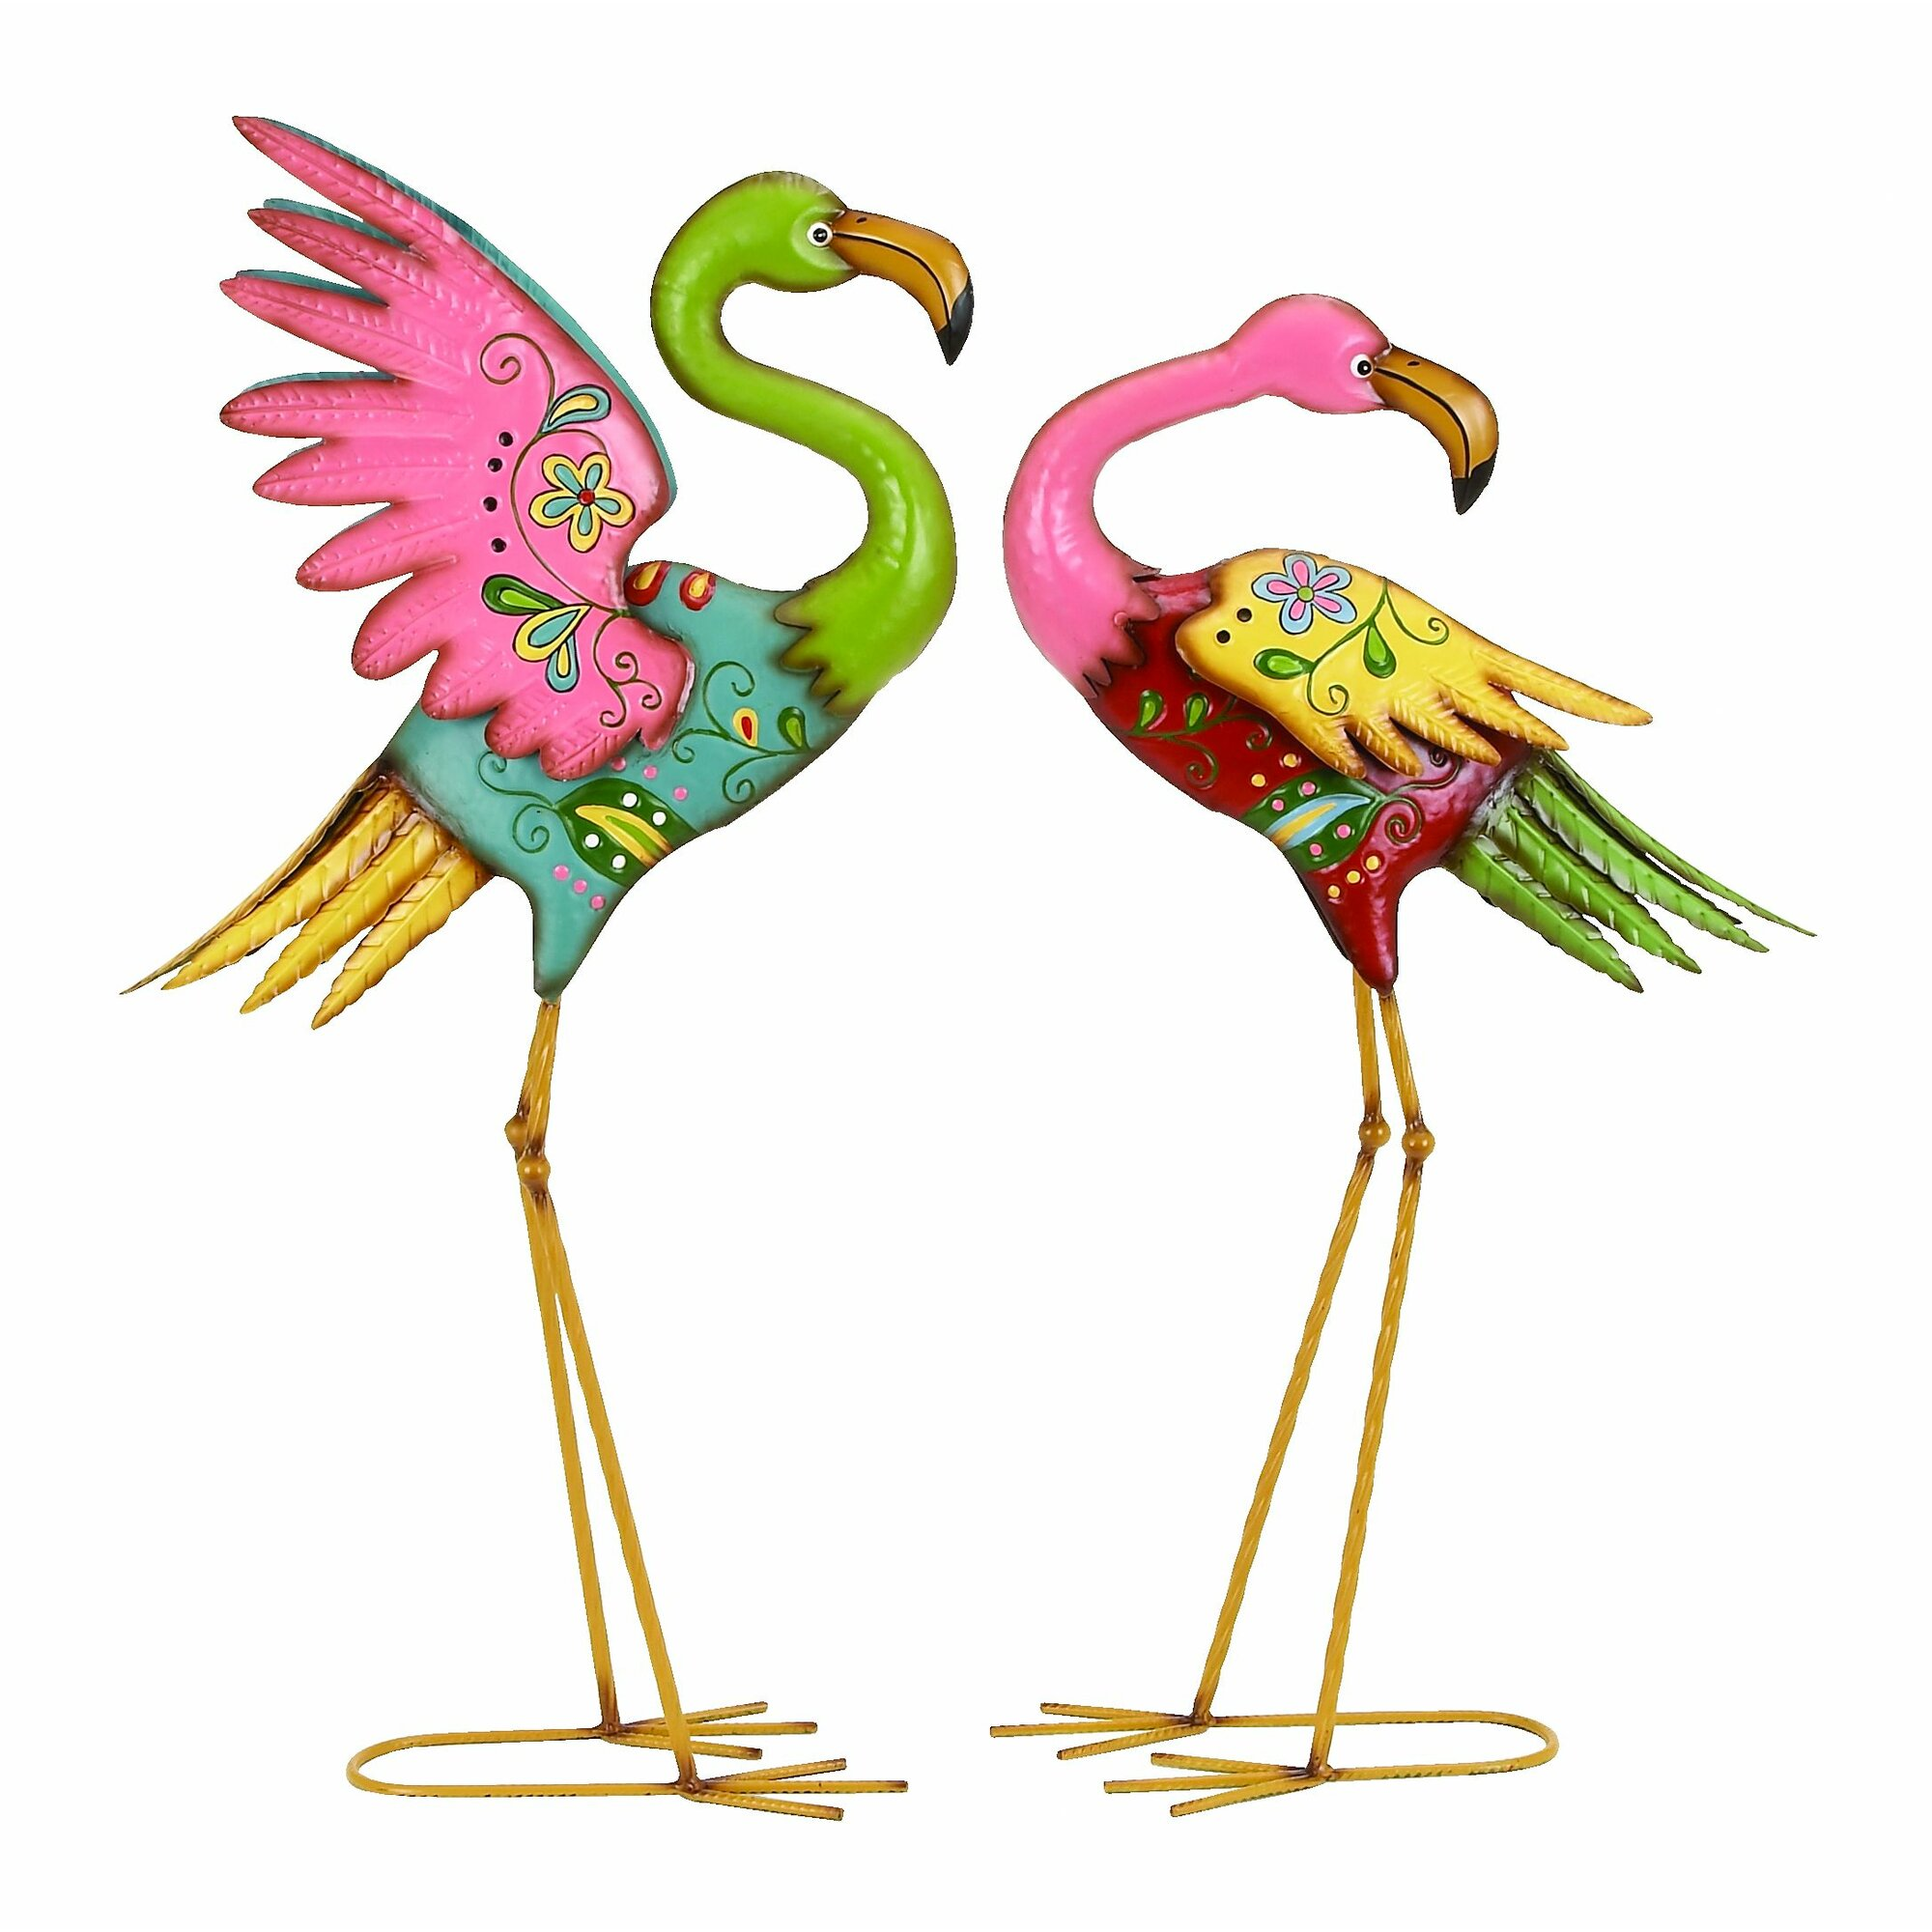 Flamingo garden ornament - Outdoor Garden Flamingo Statue Set